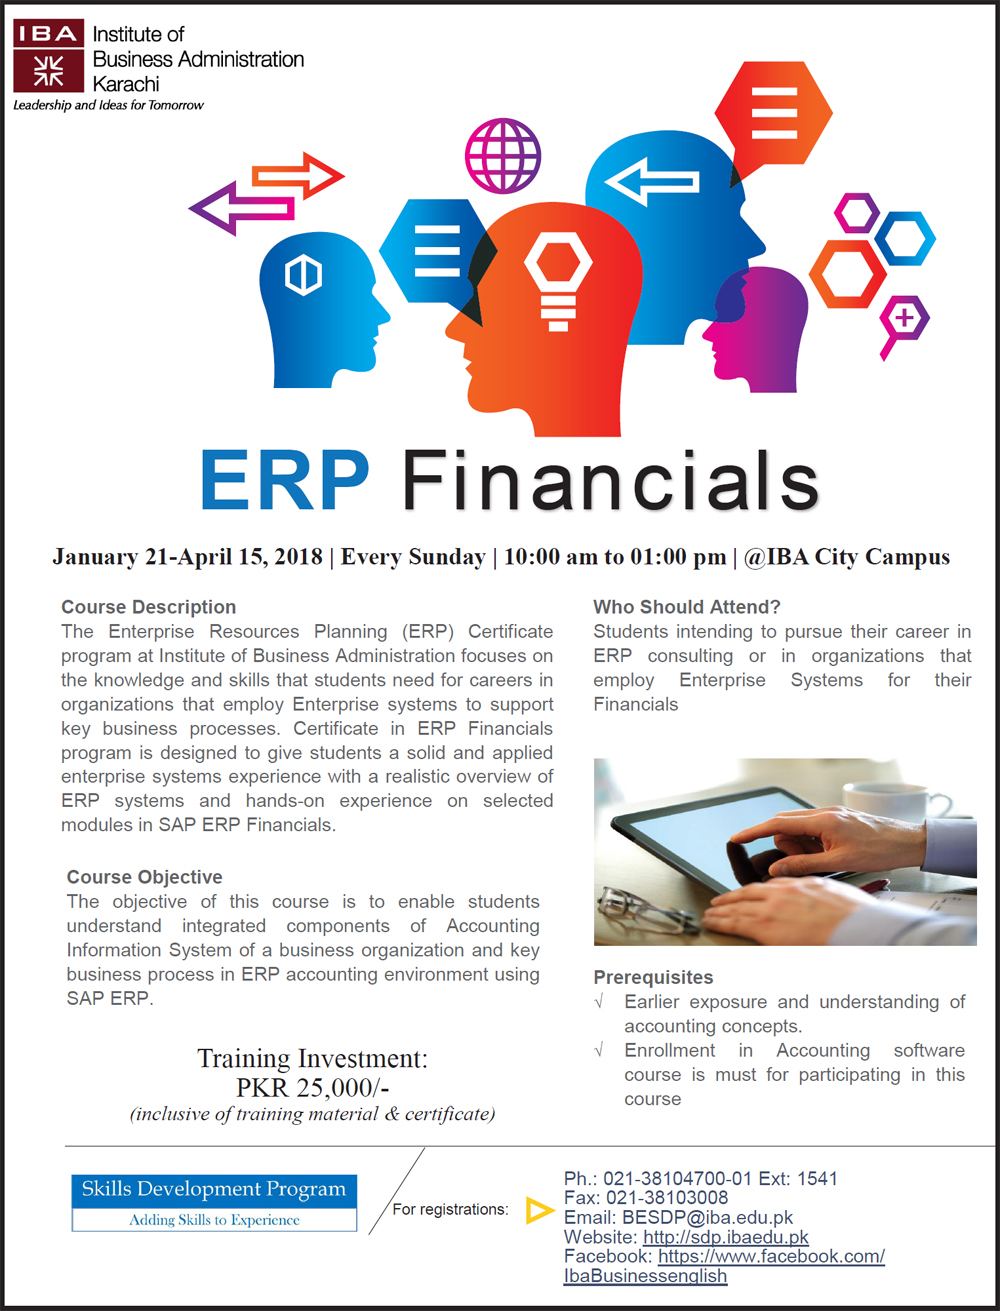 ERP Financials